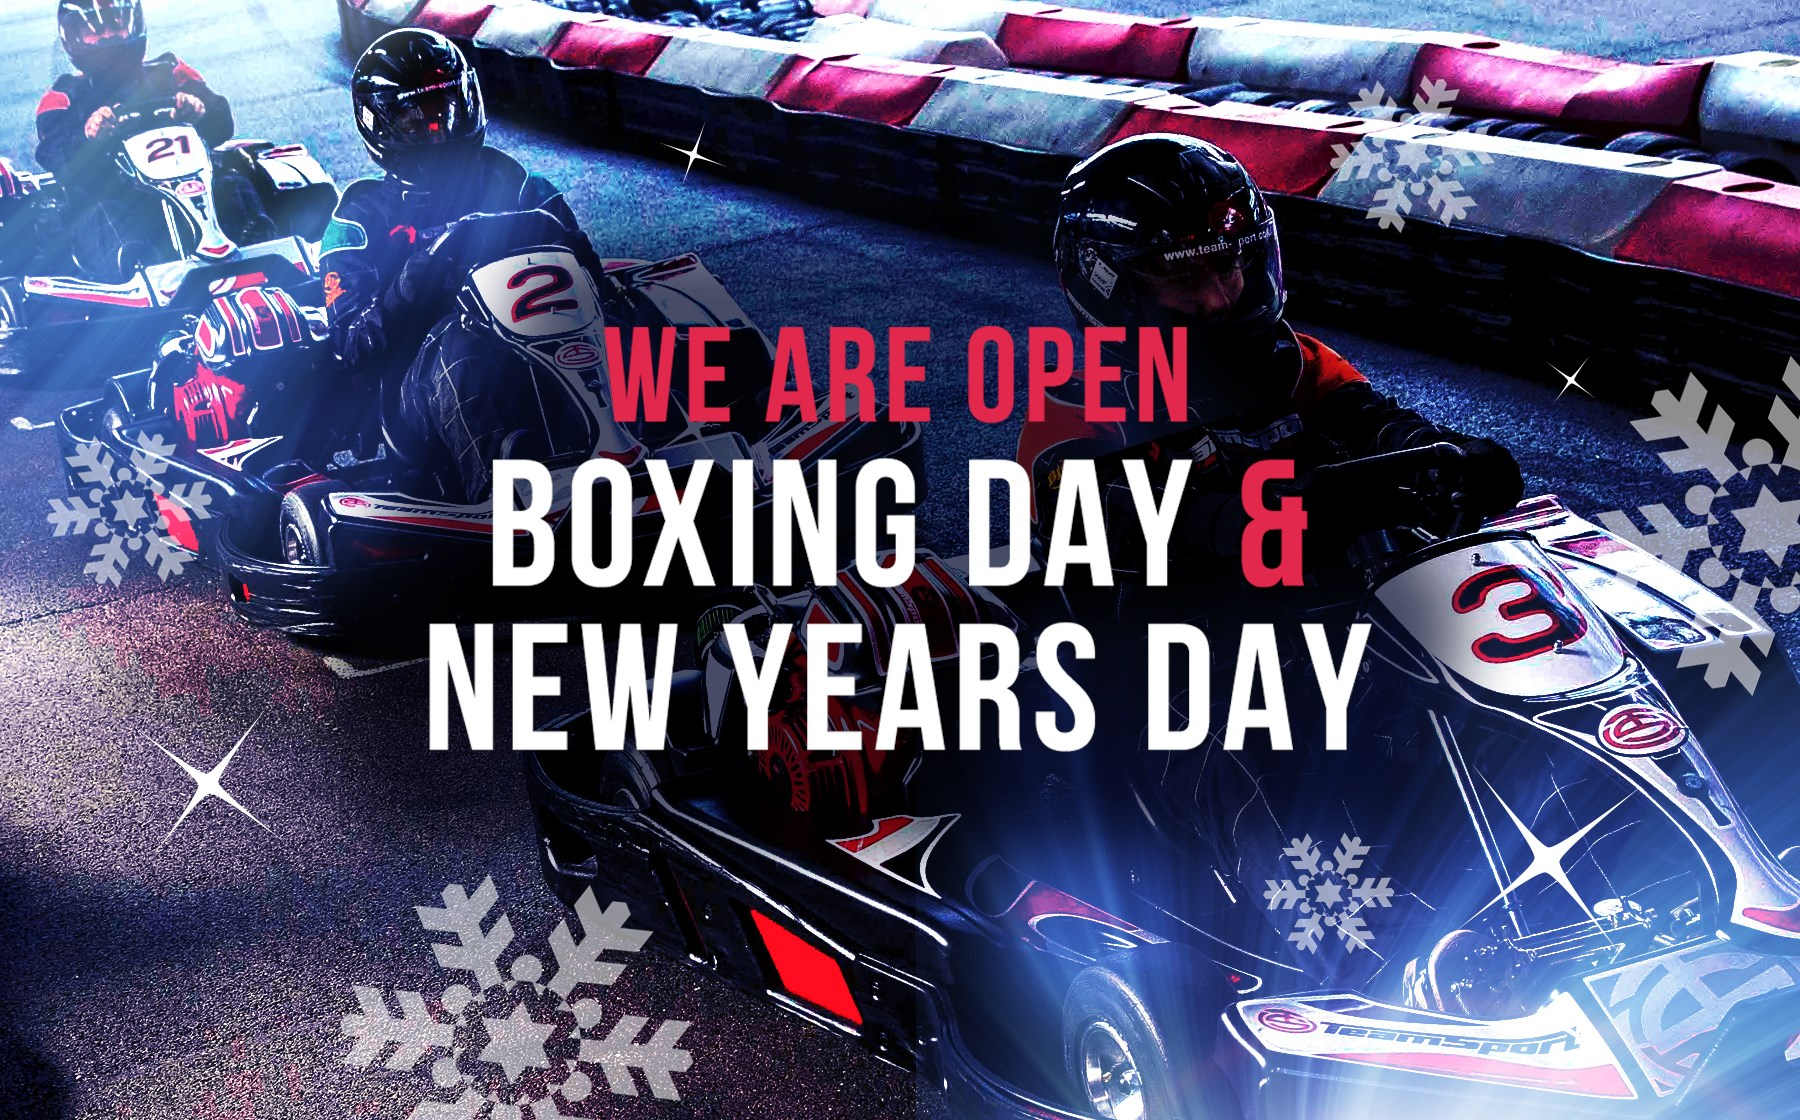 GO KARTING OFFERS - Open Boxing Day & NY Day